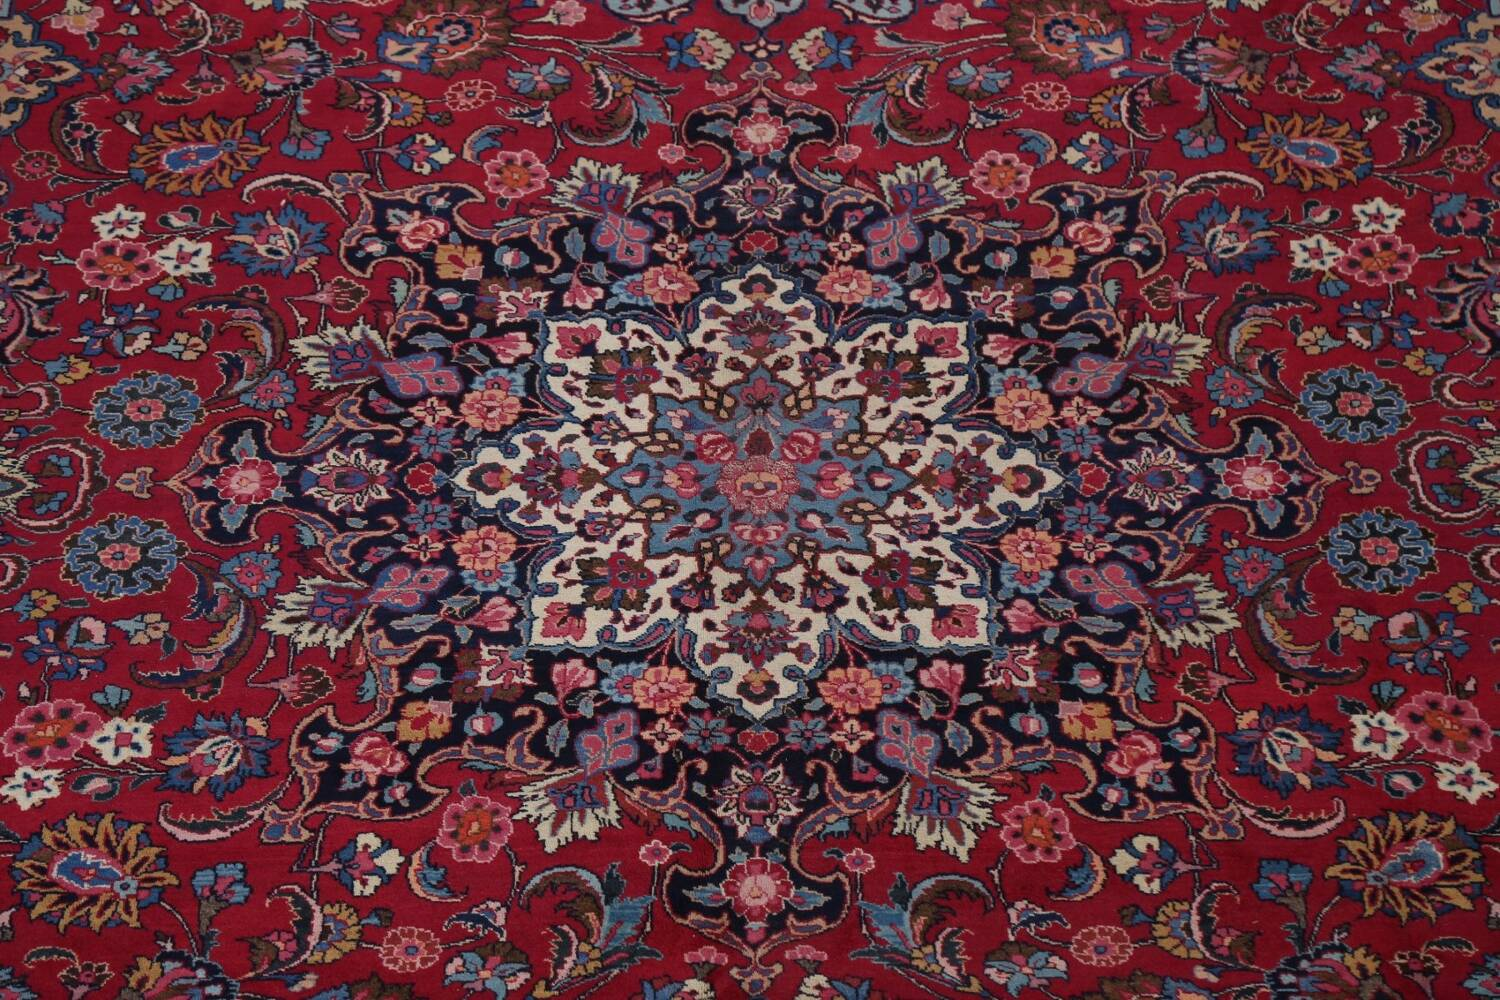 Antique Vegetable Dye Mood Persian Red Rug 11x15 image 4